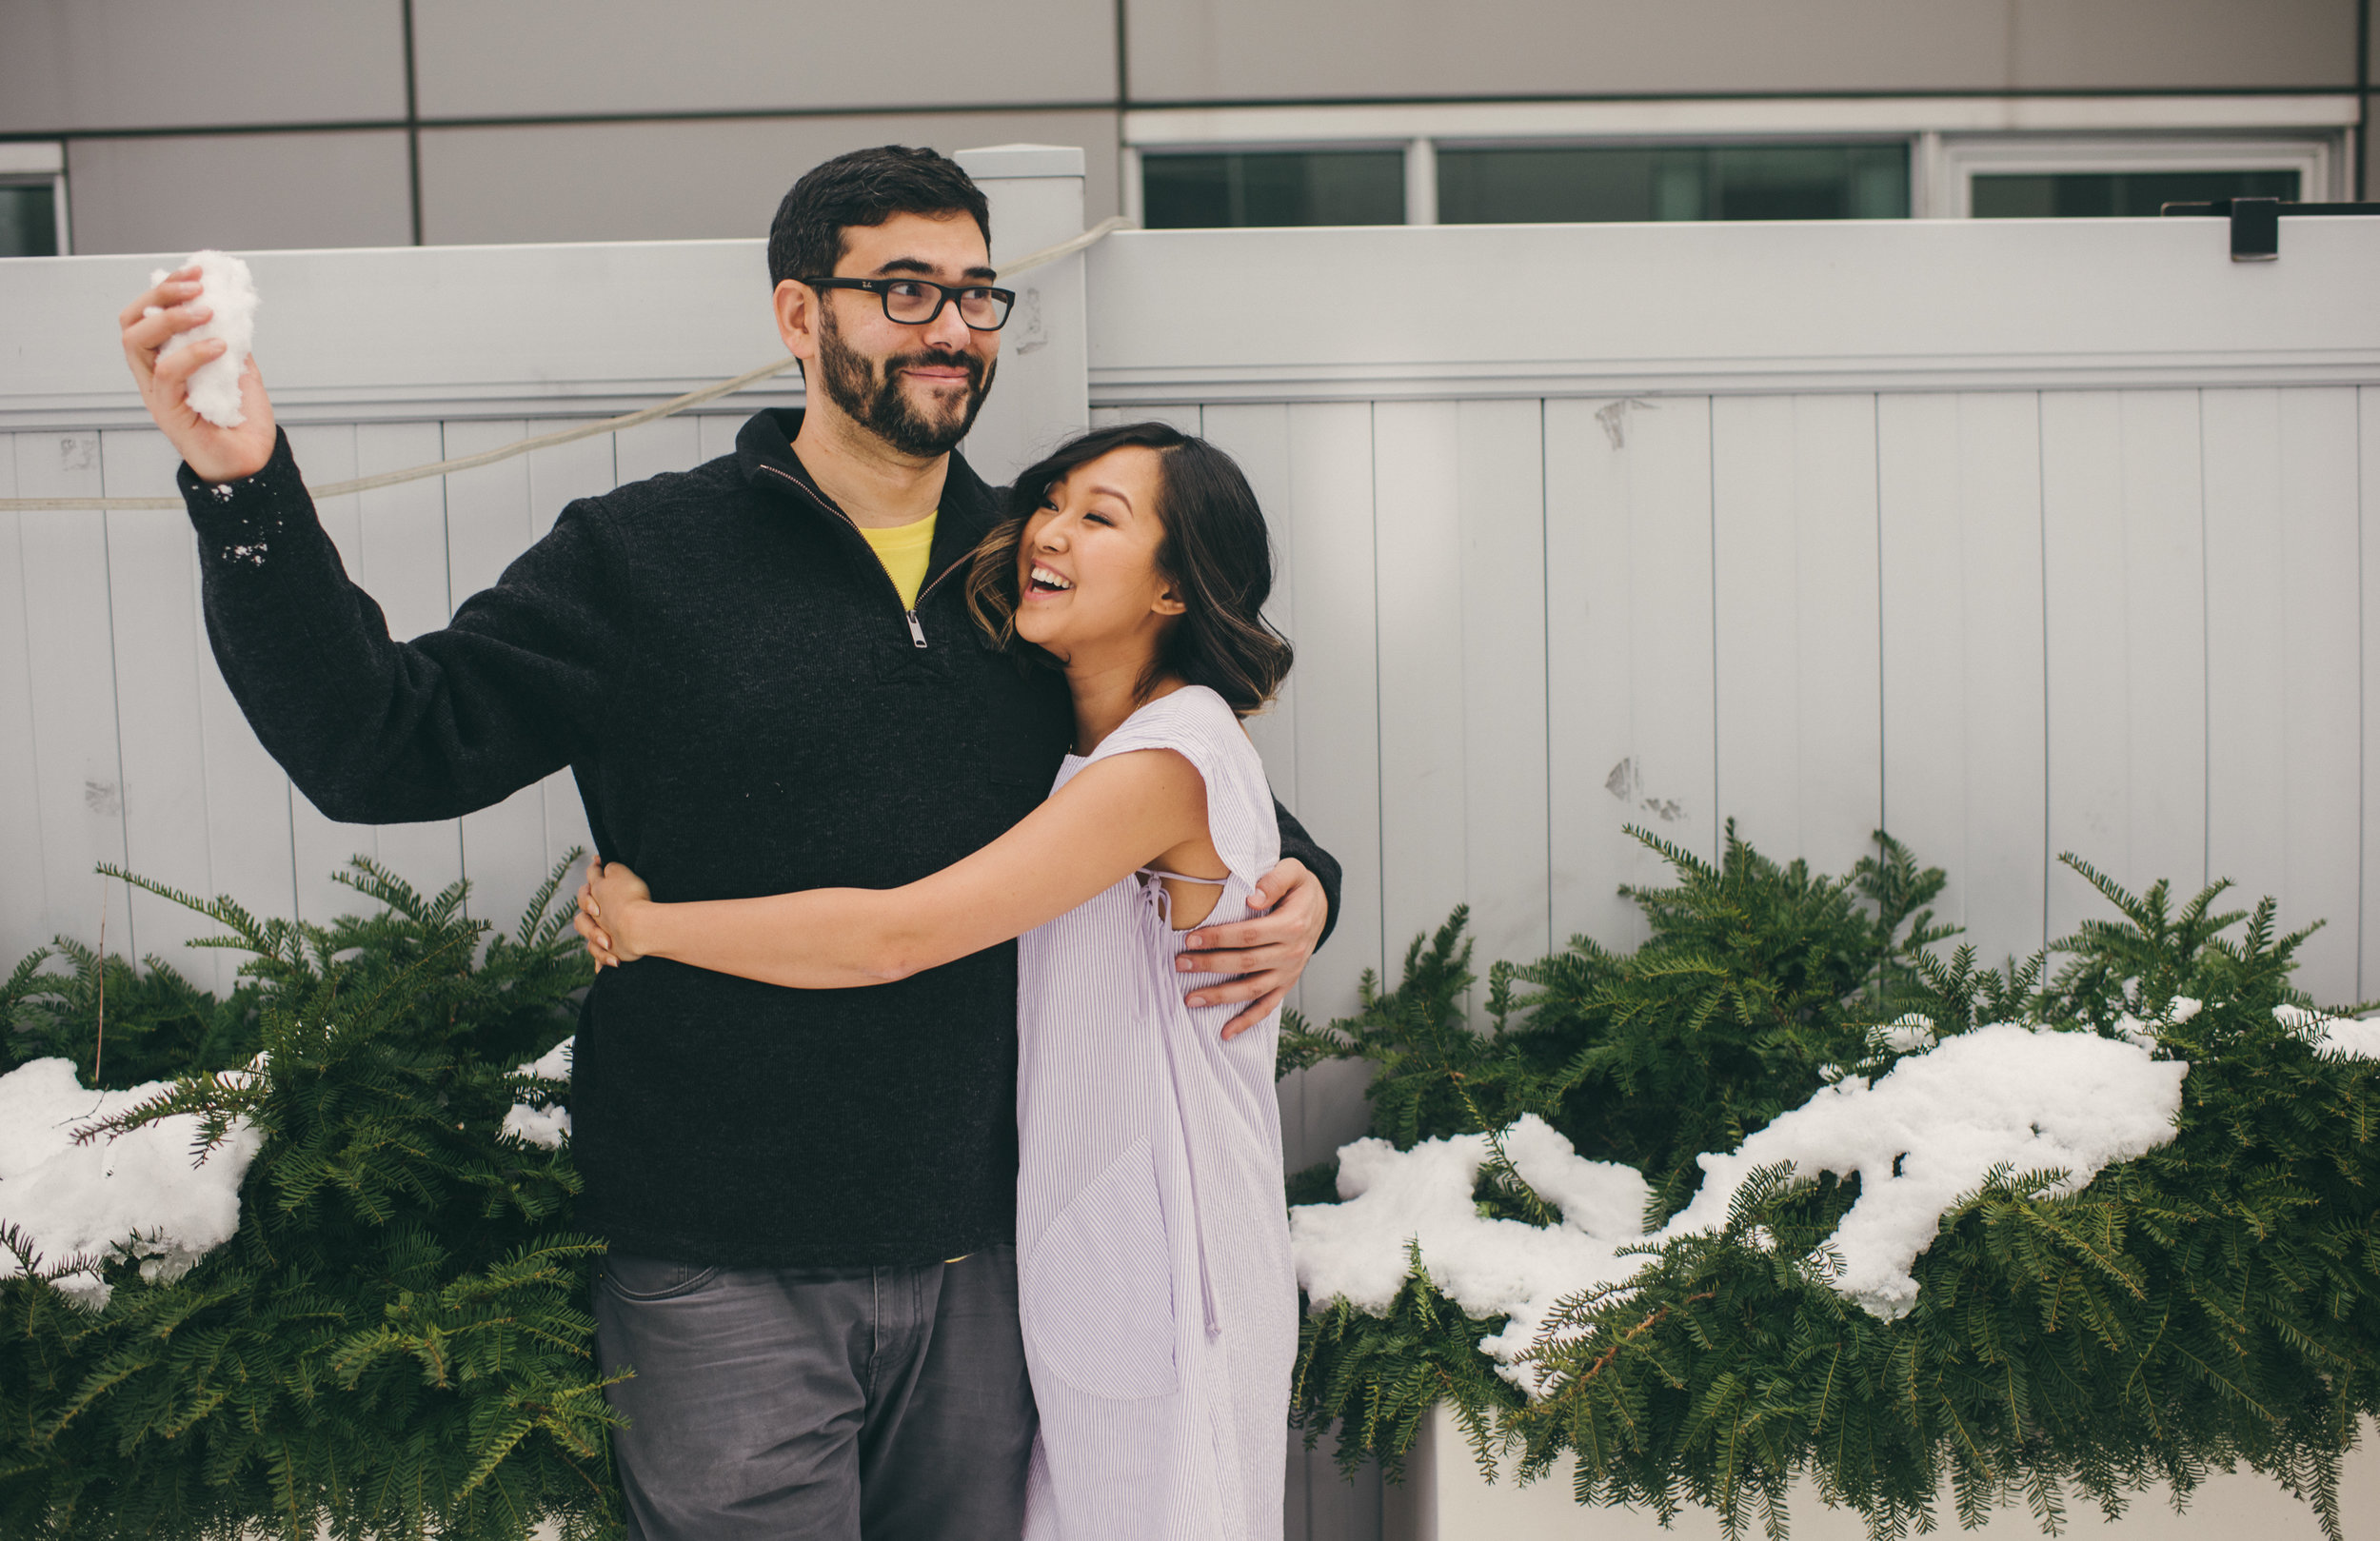 LILY & ANDREW - ENGAGED - TWOTWENTY by CHI-CHI AGBIM-101.jpg